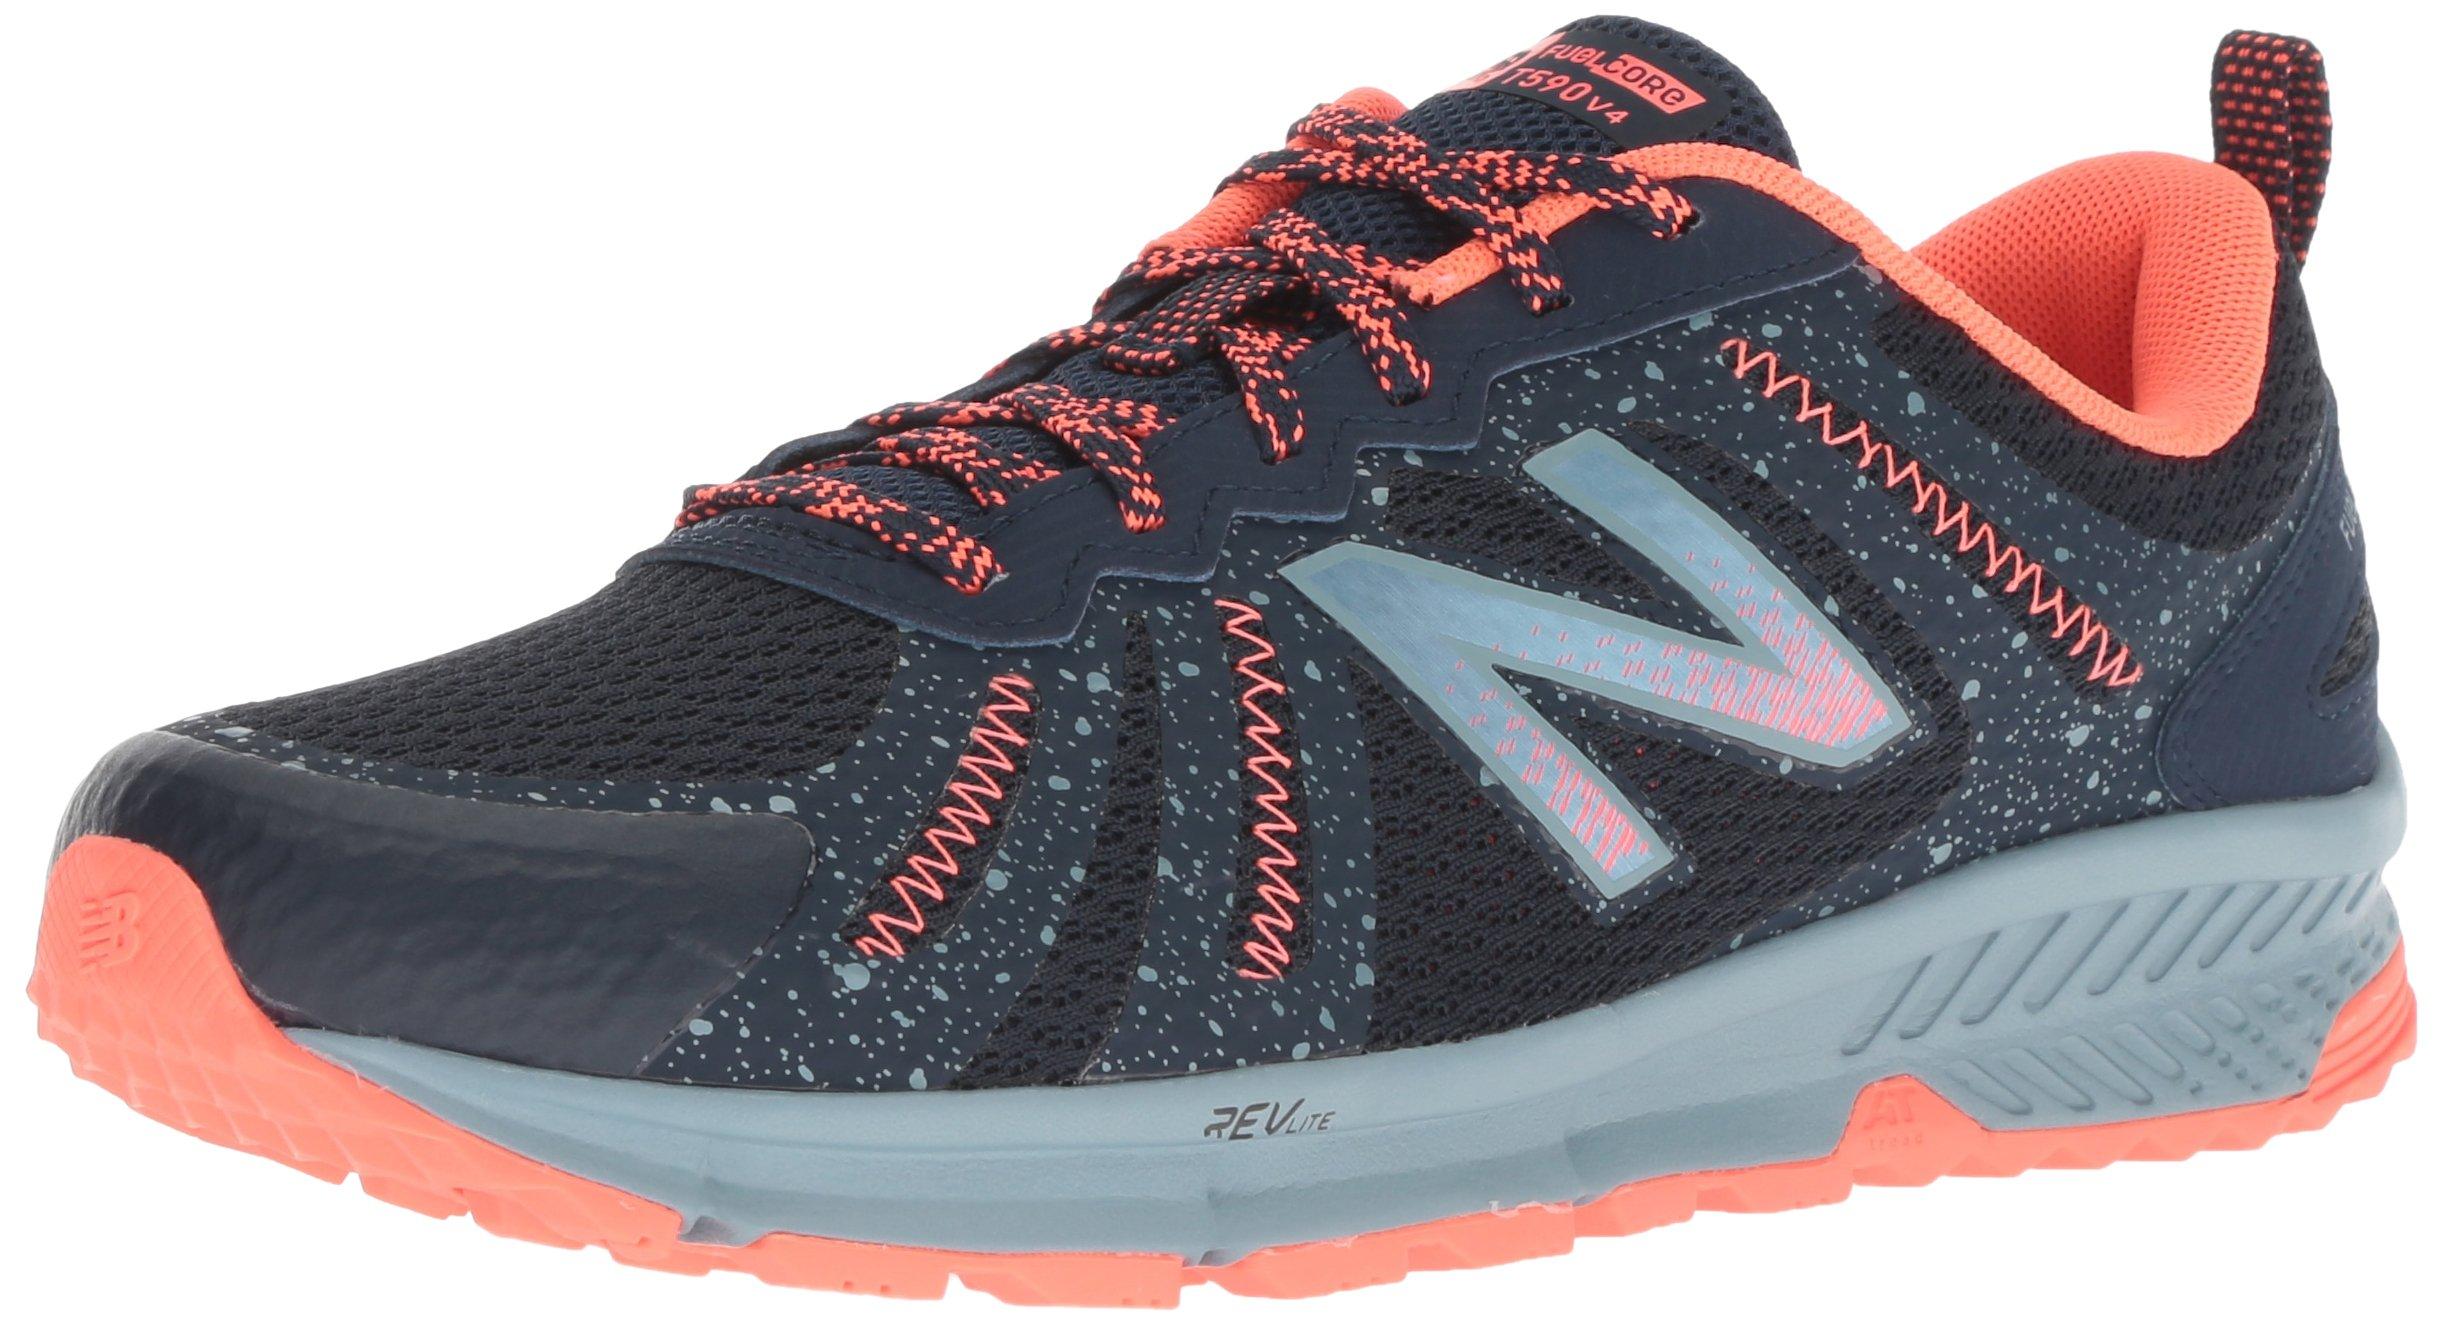 New Balance Women's 590v4 FuelCore Trail Running Shoe, Galaxy, 5.5 B US by New Balance (Image #1)